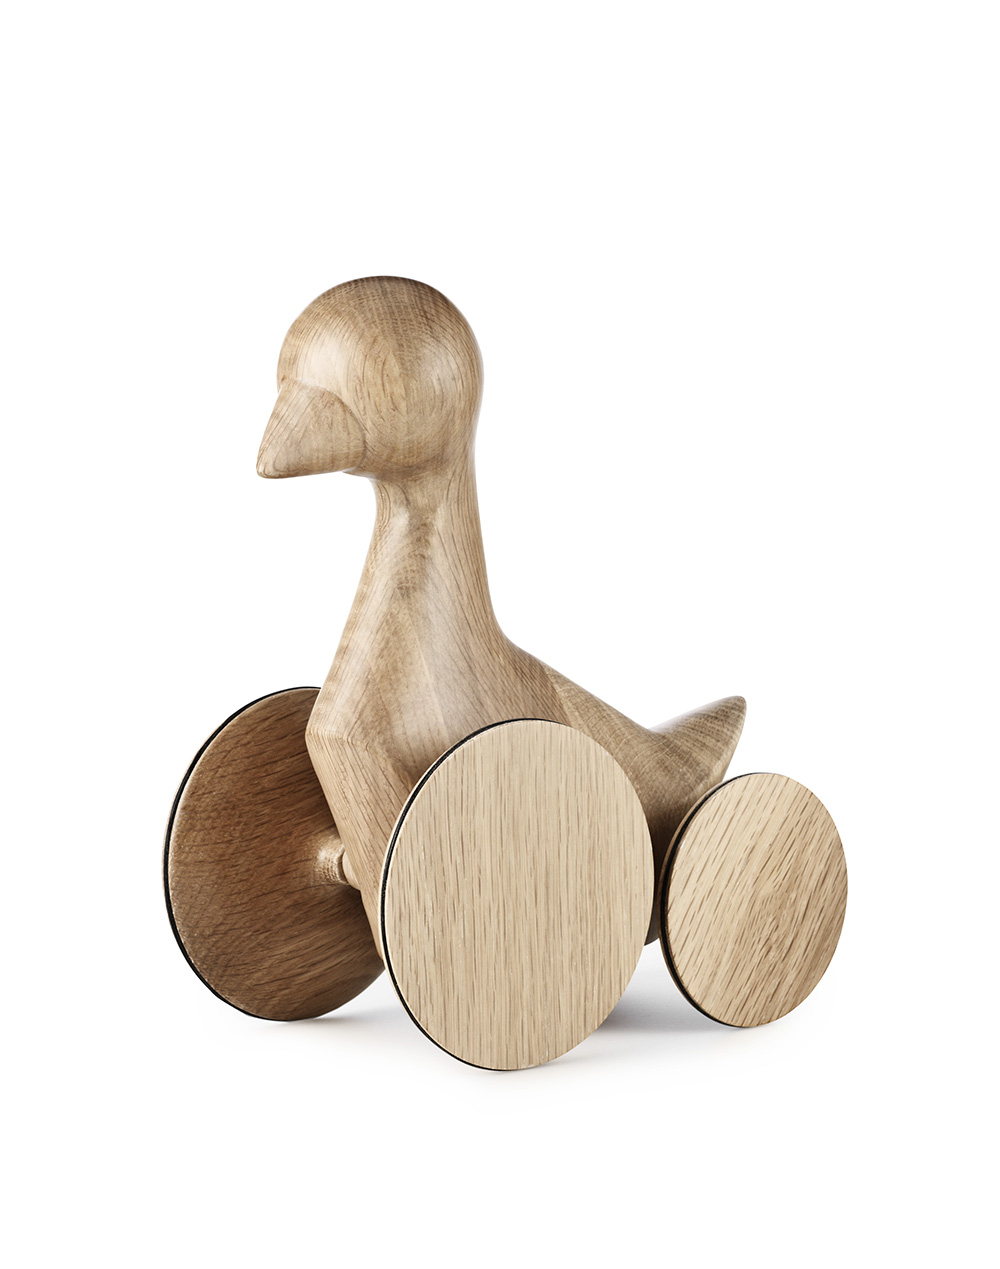 ducky-wooden-figure-by-dor-carmon-8.jpg